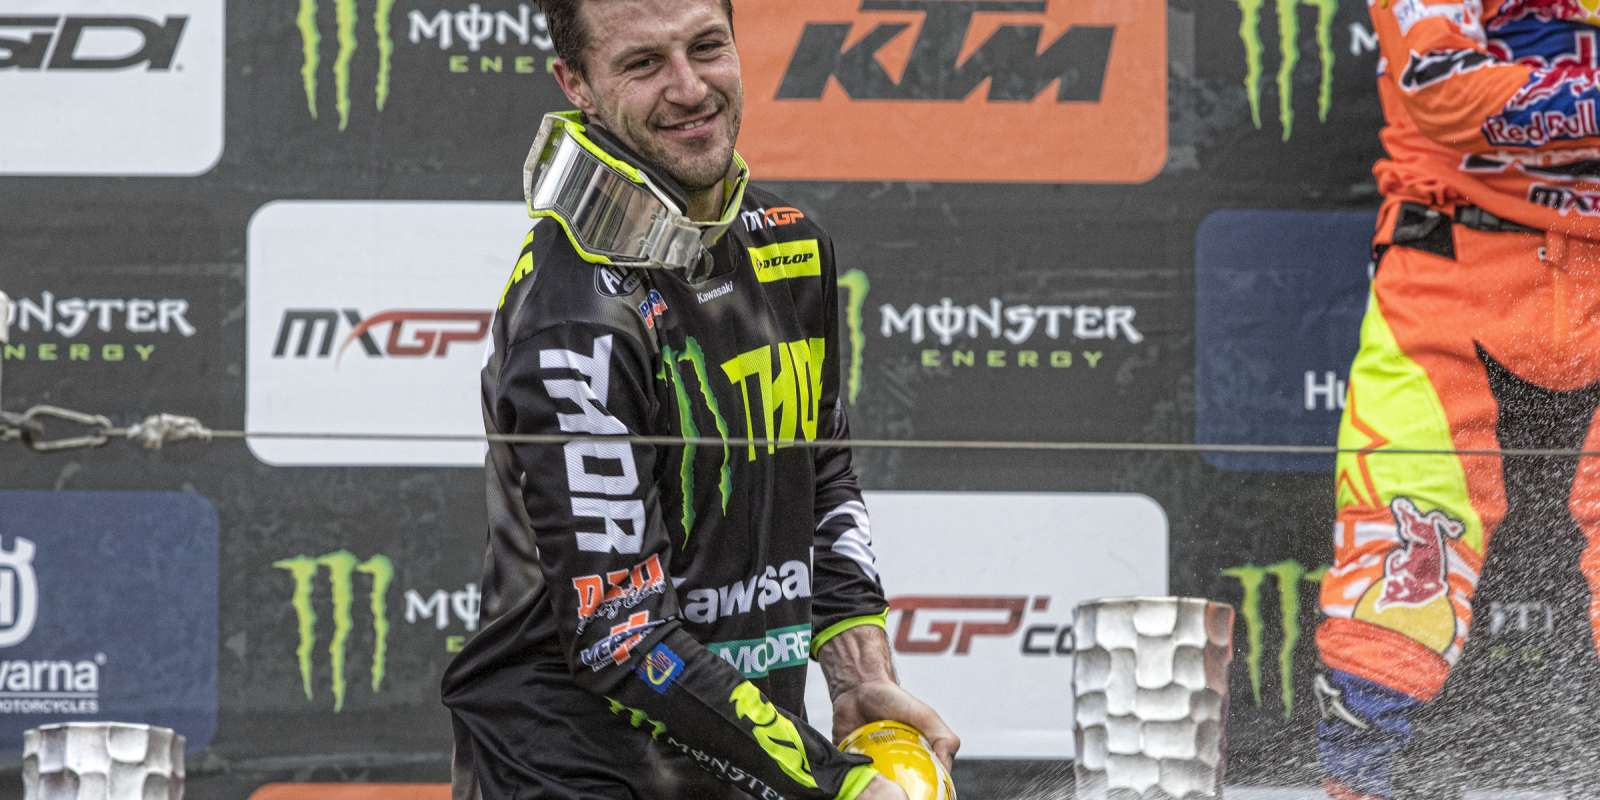 Clement Desalle celebrating on the podium of 2018 MXGP Trentino